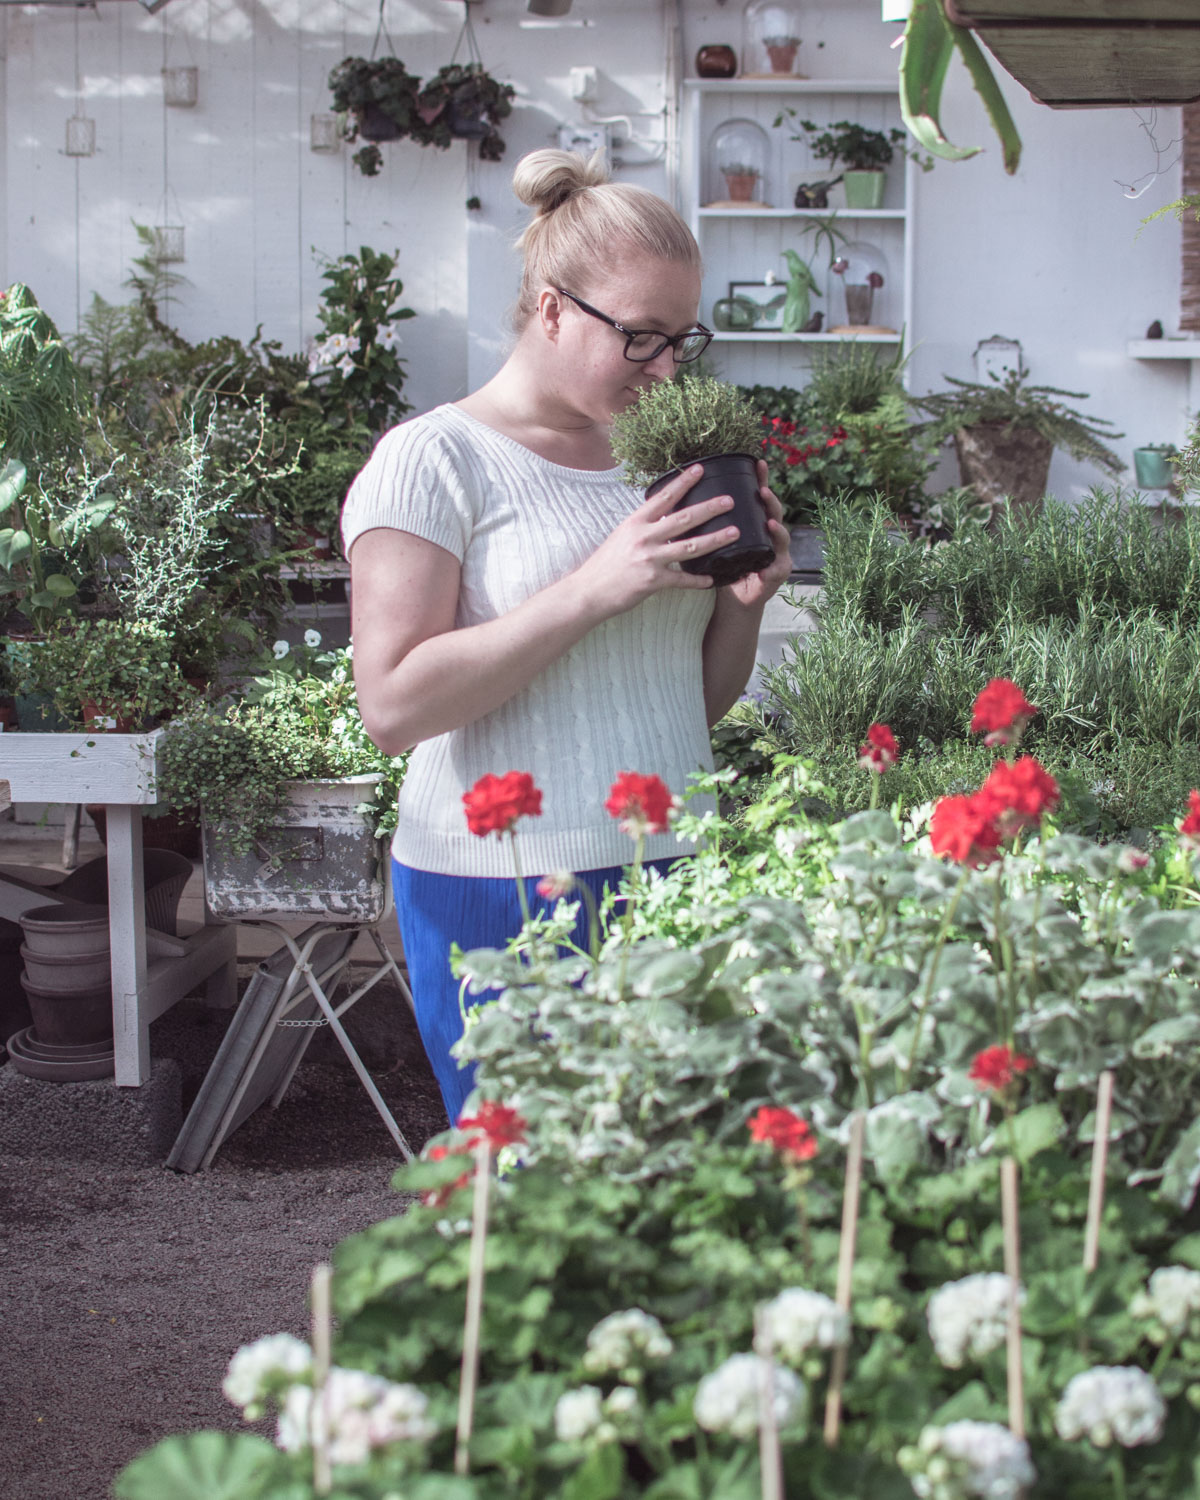 Blonde woman smelling flowers in a greenhouse